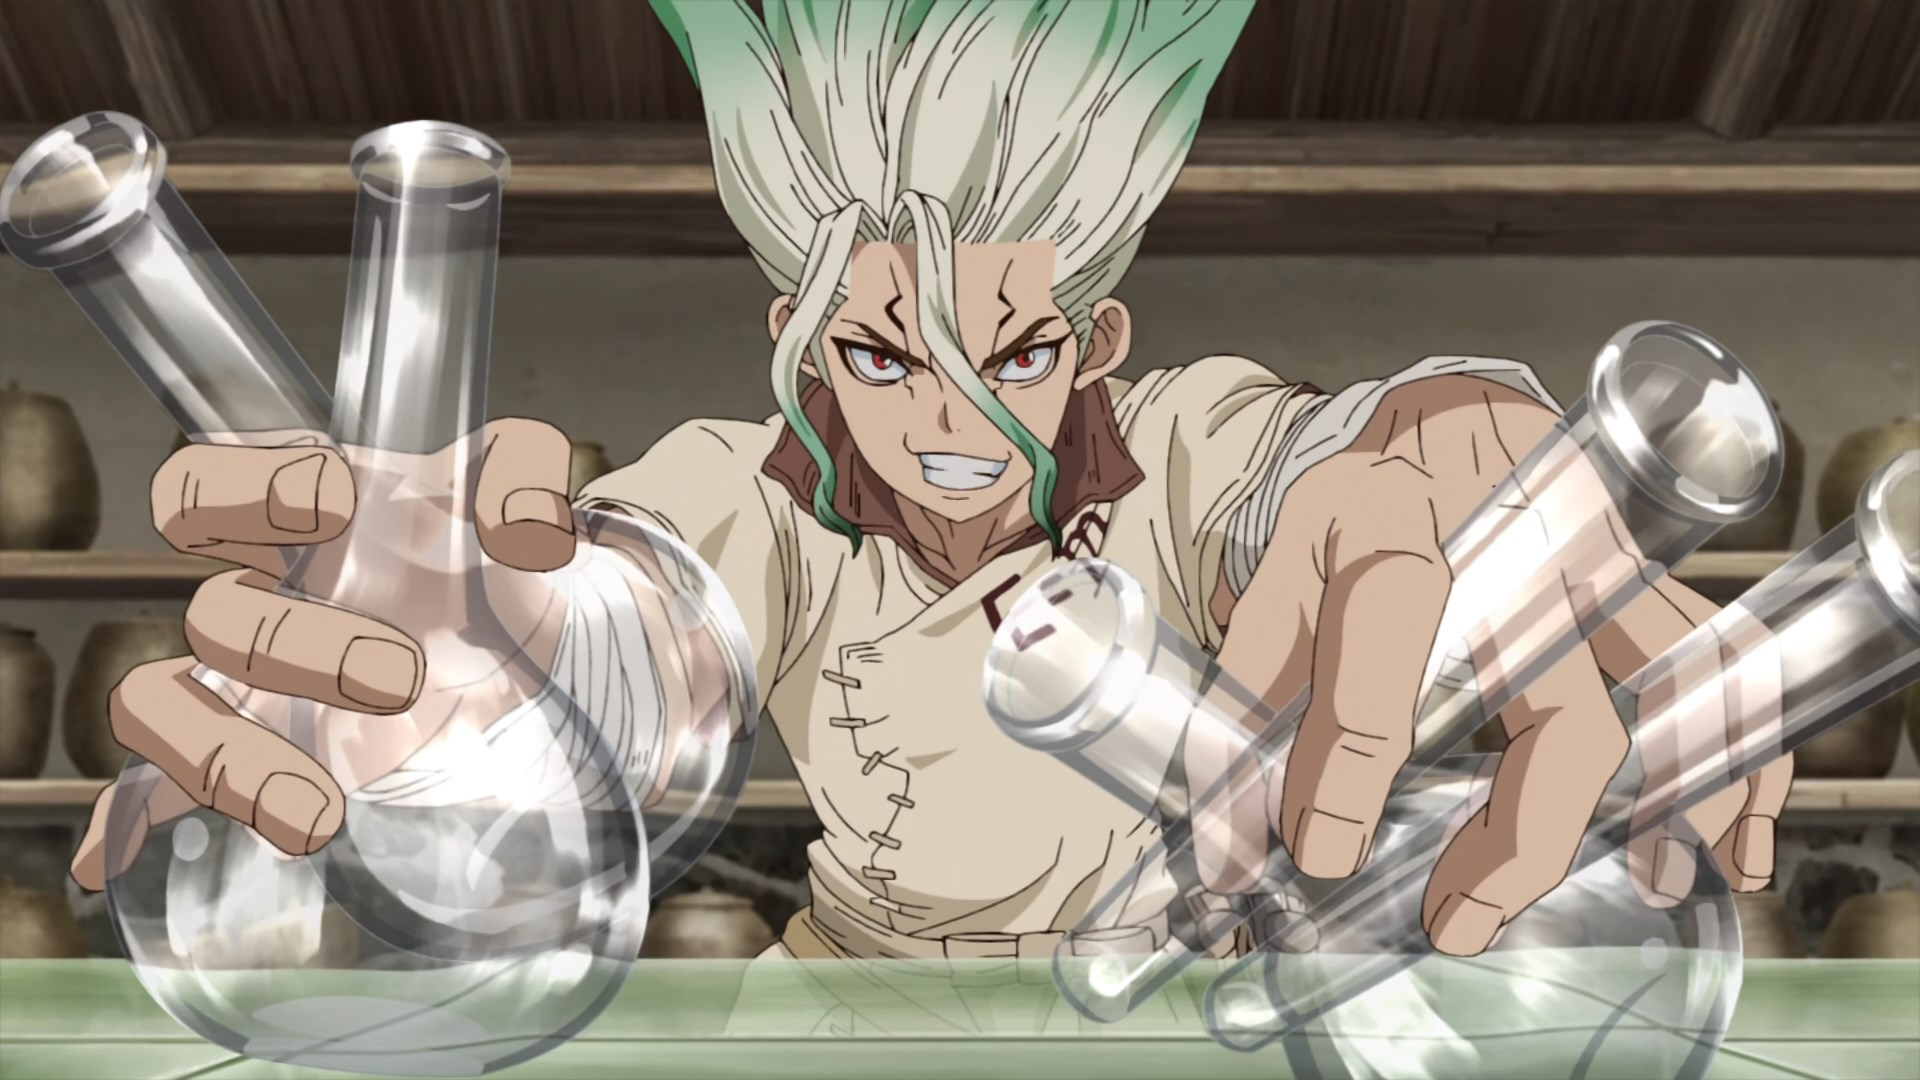 Shounen_anime_dr_stone_AllAnimeMag